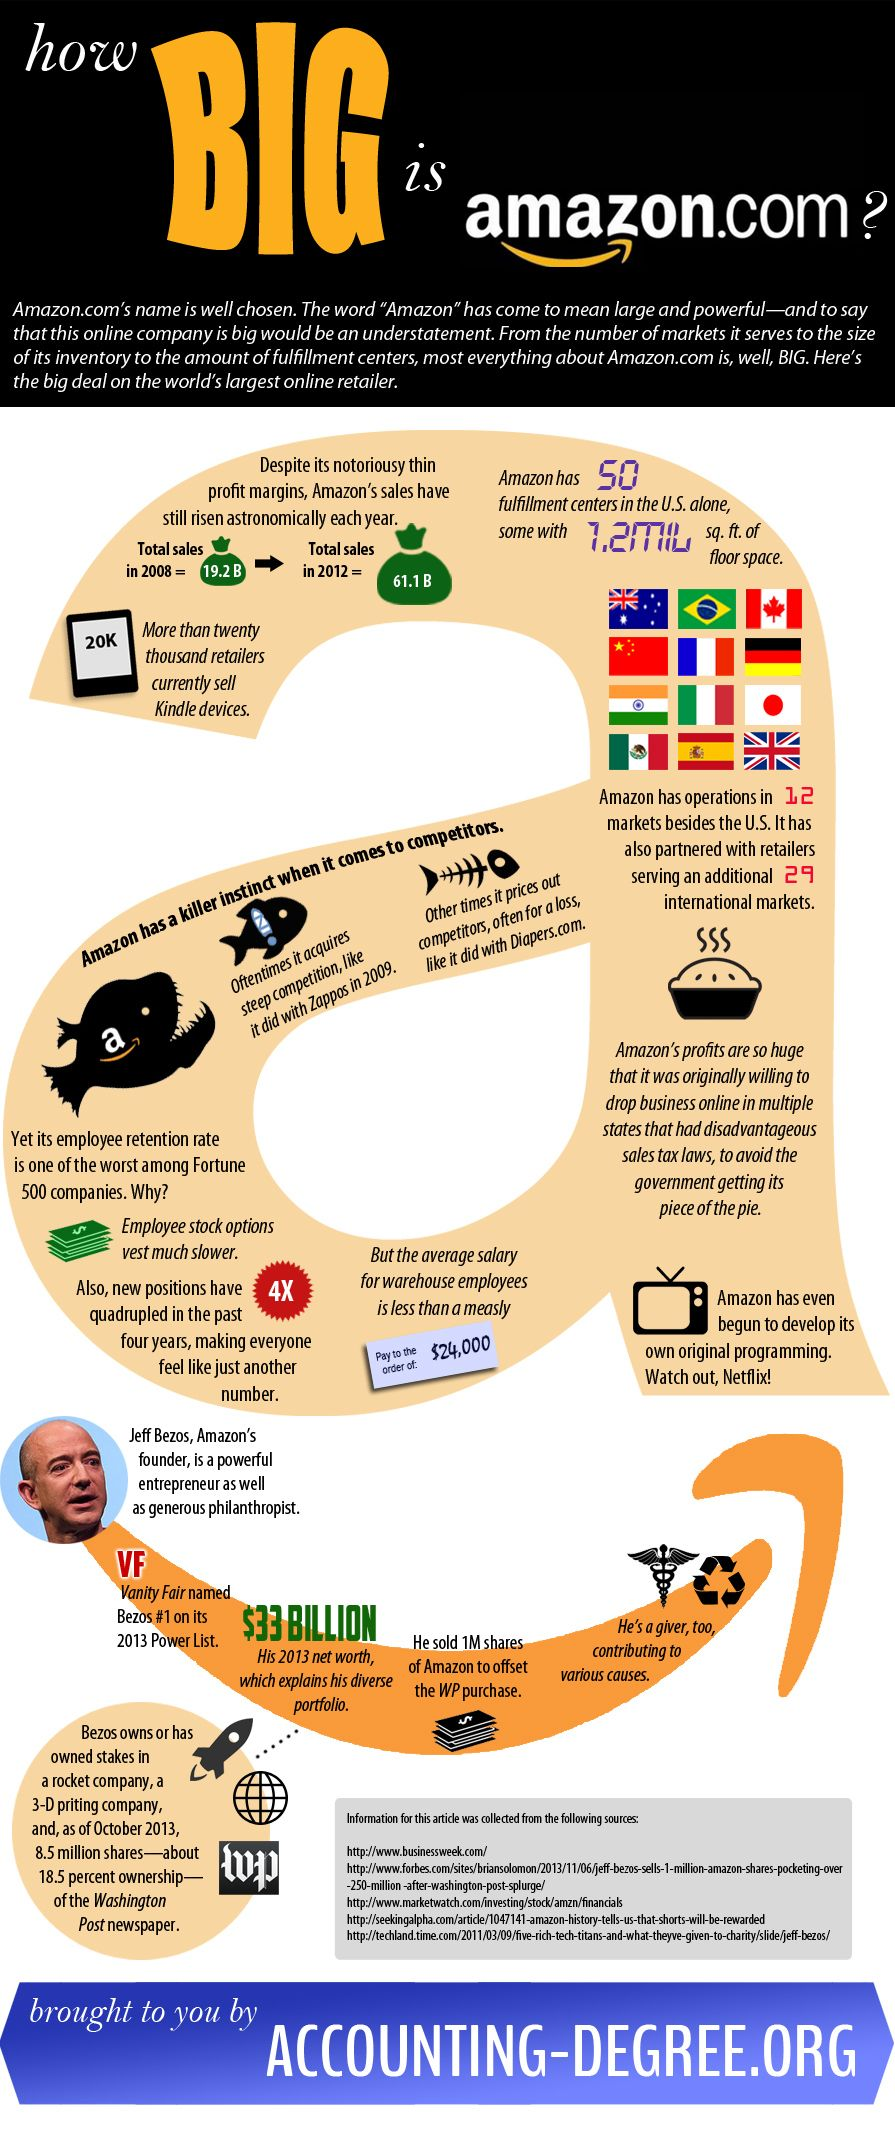 How Big Is Amazon.com? [INFOGRAPHIC] #Amazon